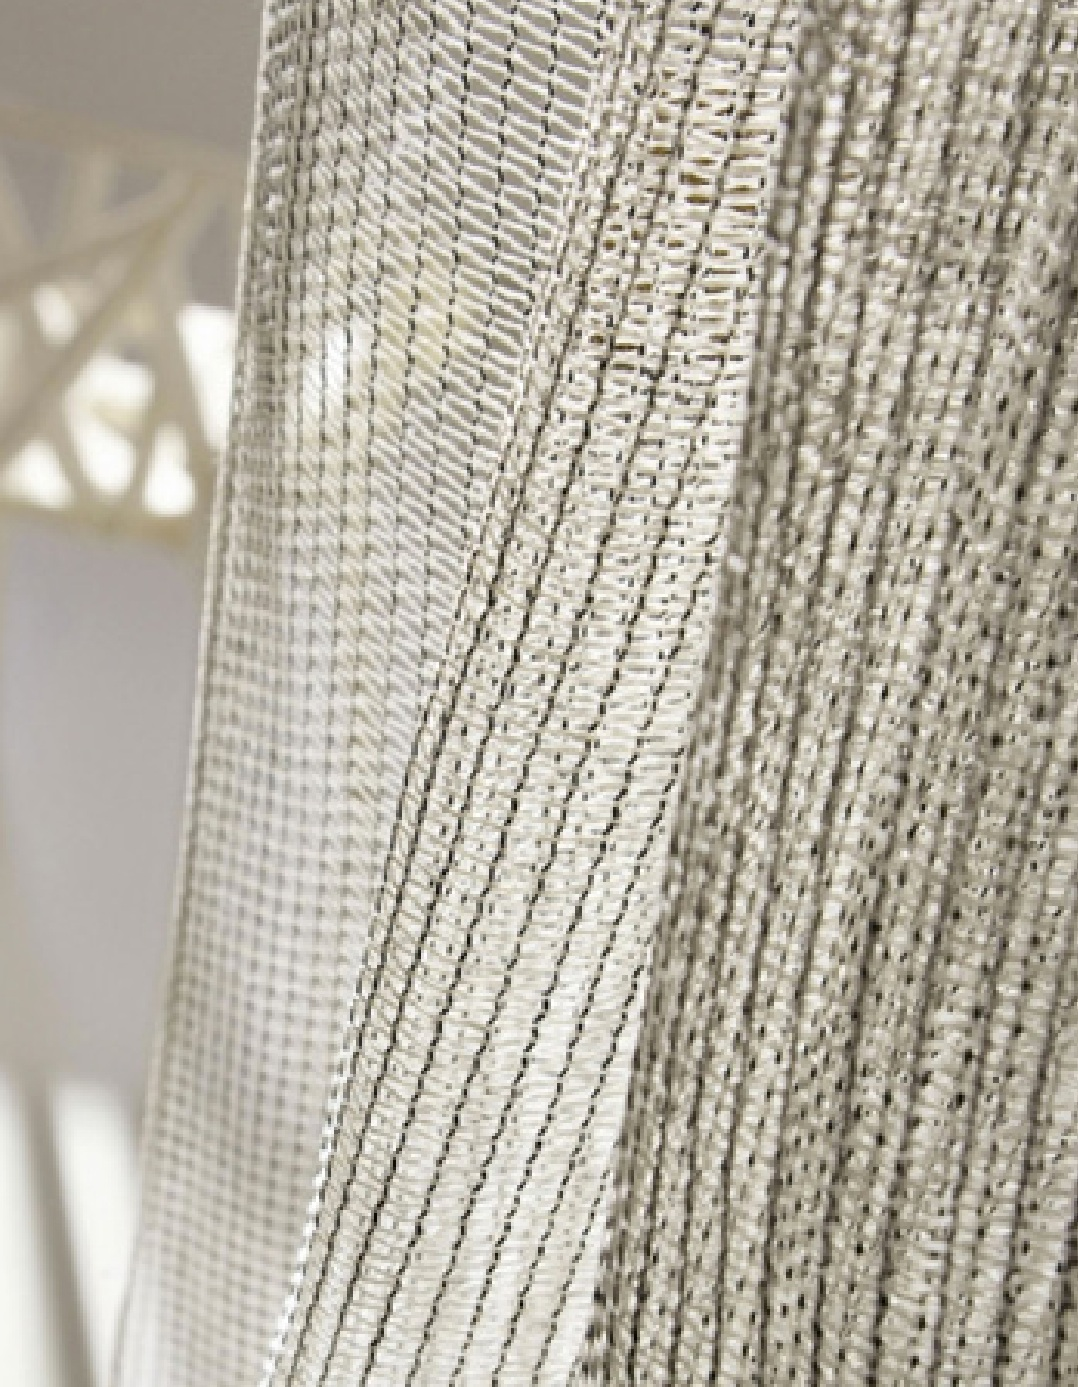 03. WOHNTEX , mesh fabric for curtains